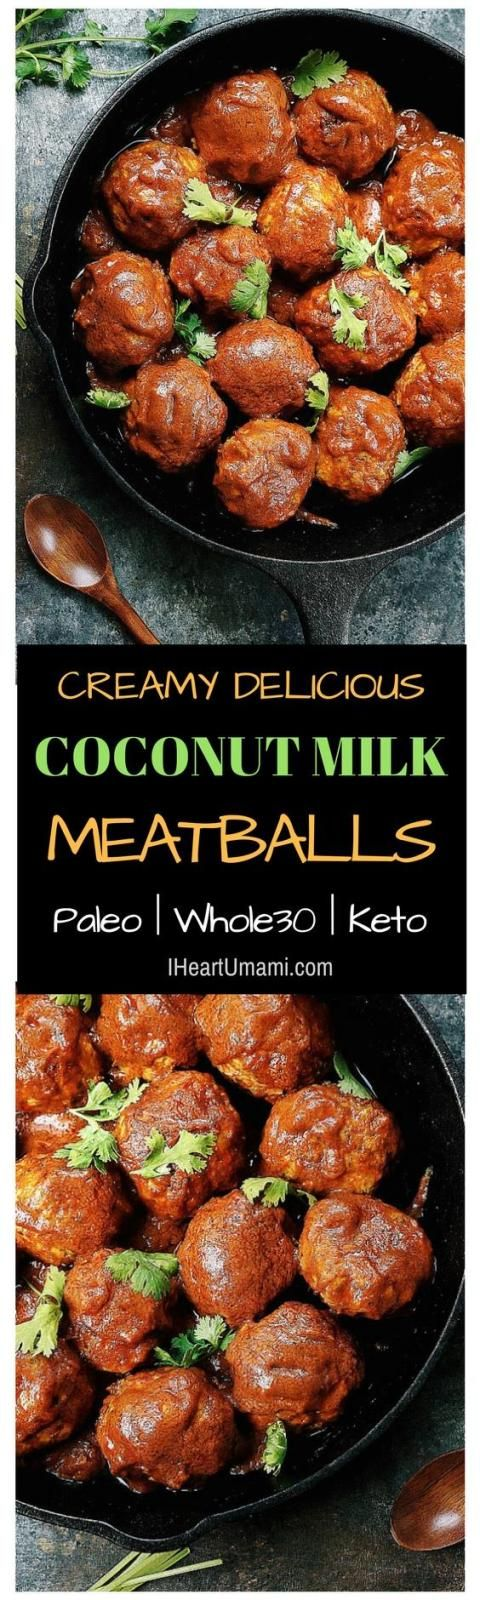 Creamy delicious Paleo Coconut Cream Meatballs everyone will love in the family. You can use chicken, turkey, veal, pork, or even lamb. Super delicious ! Follow the link to make these meatballs yours ! #meatballs #Whole30meatballs #paleomeatballs